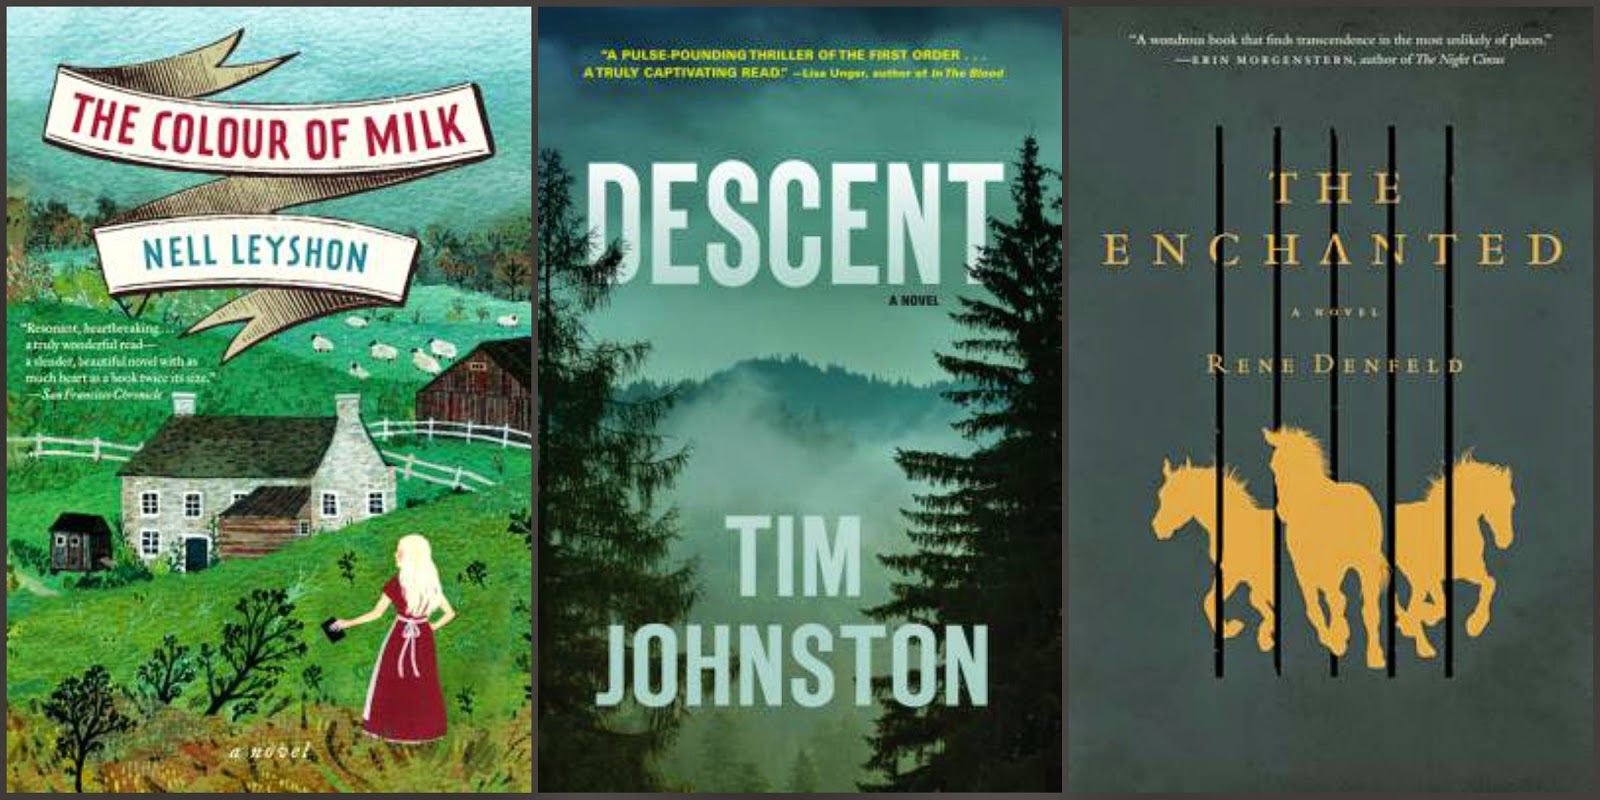 Colour of Milk by Nell Leyshon, Descent by Tim Johnston, The Enchanted by Rene Denfeld